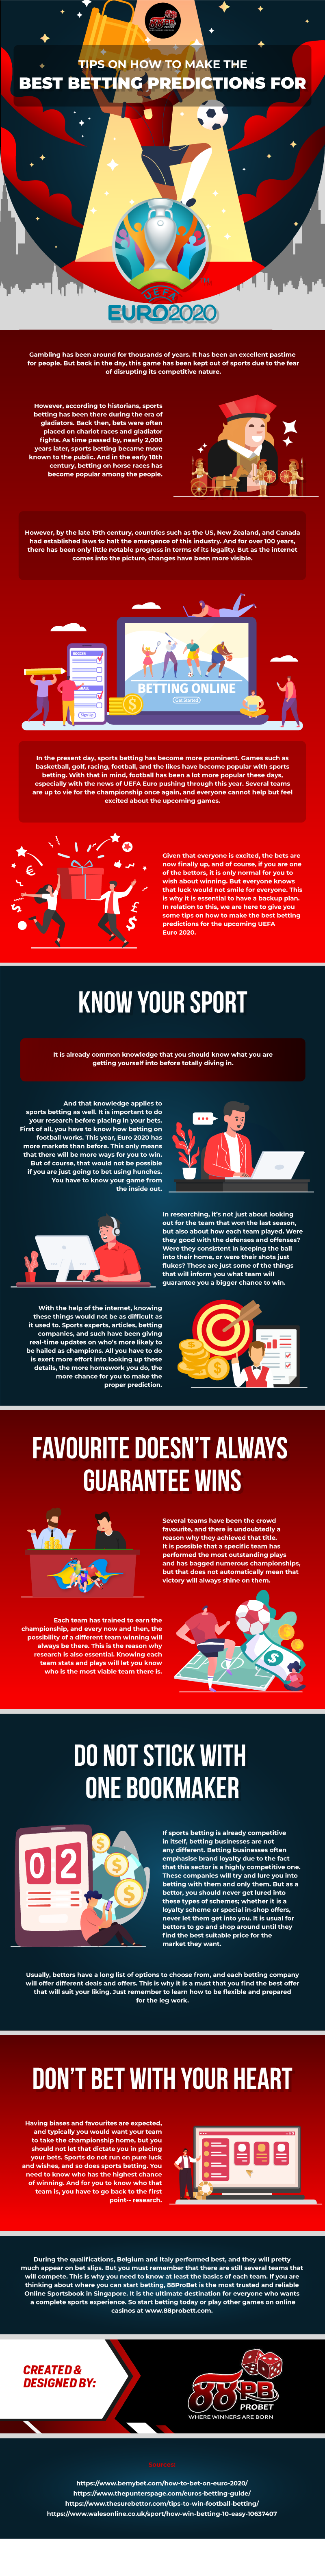 Tips-on-How-to-Make-The-best-Betting-Predictions-For-UEFA-euro-2020-Infographic